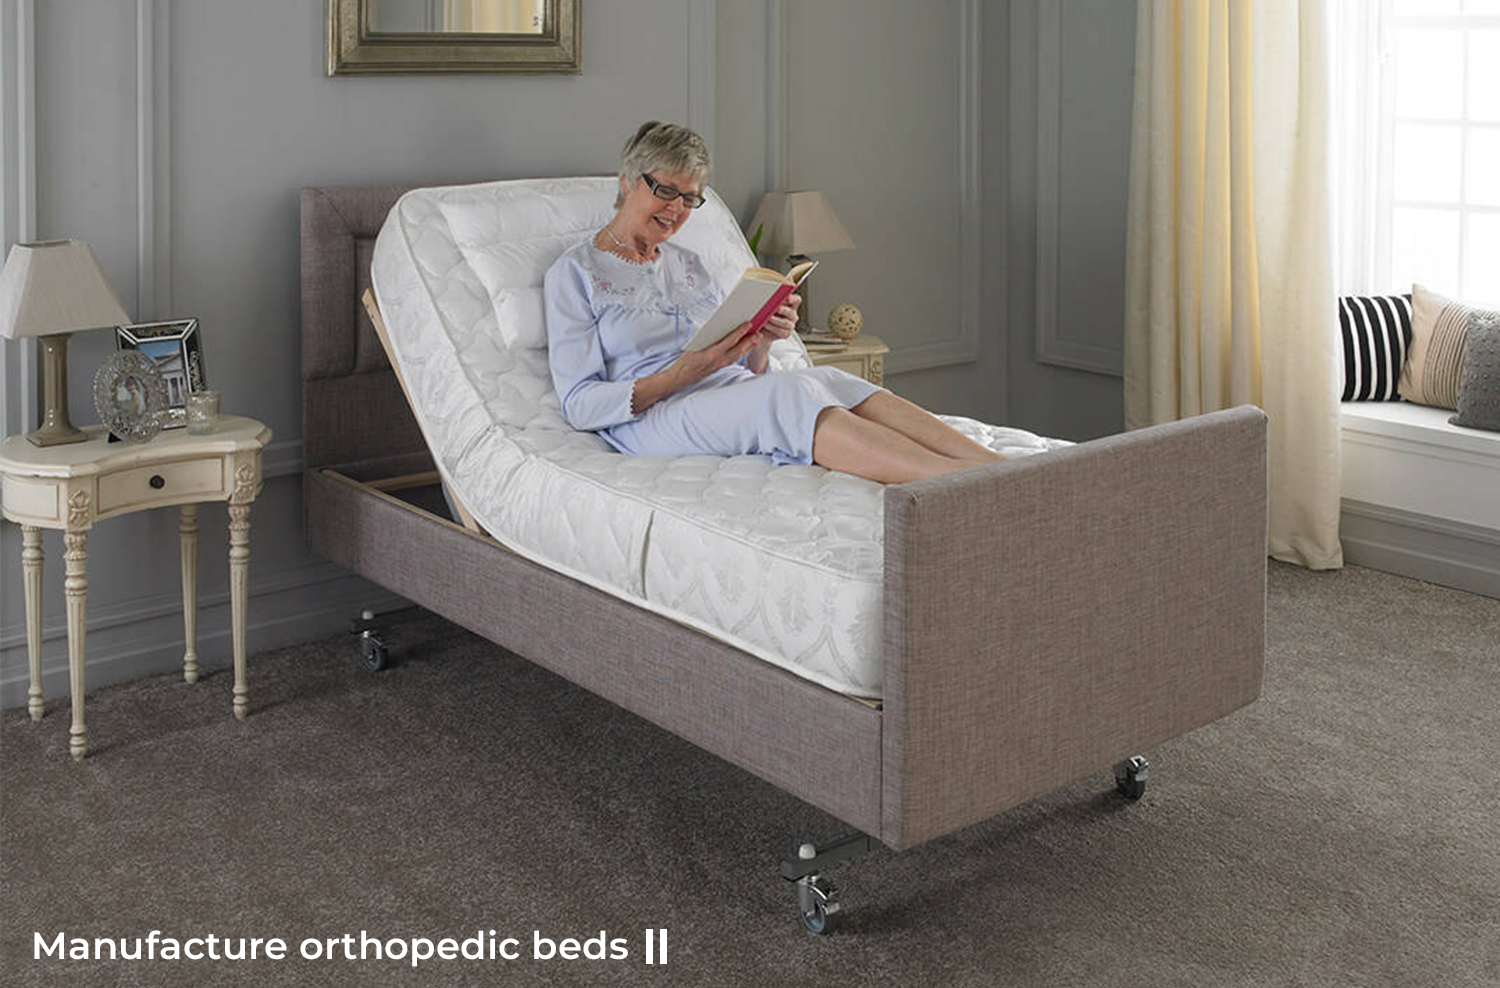 manufacture orthopedic beds